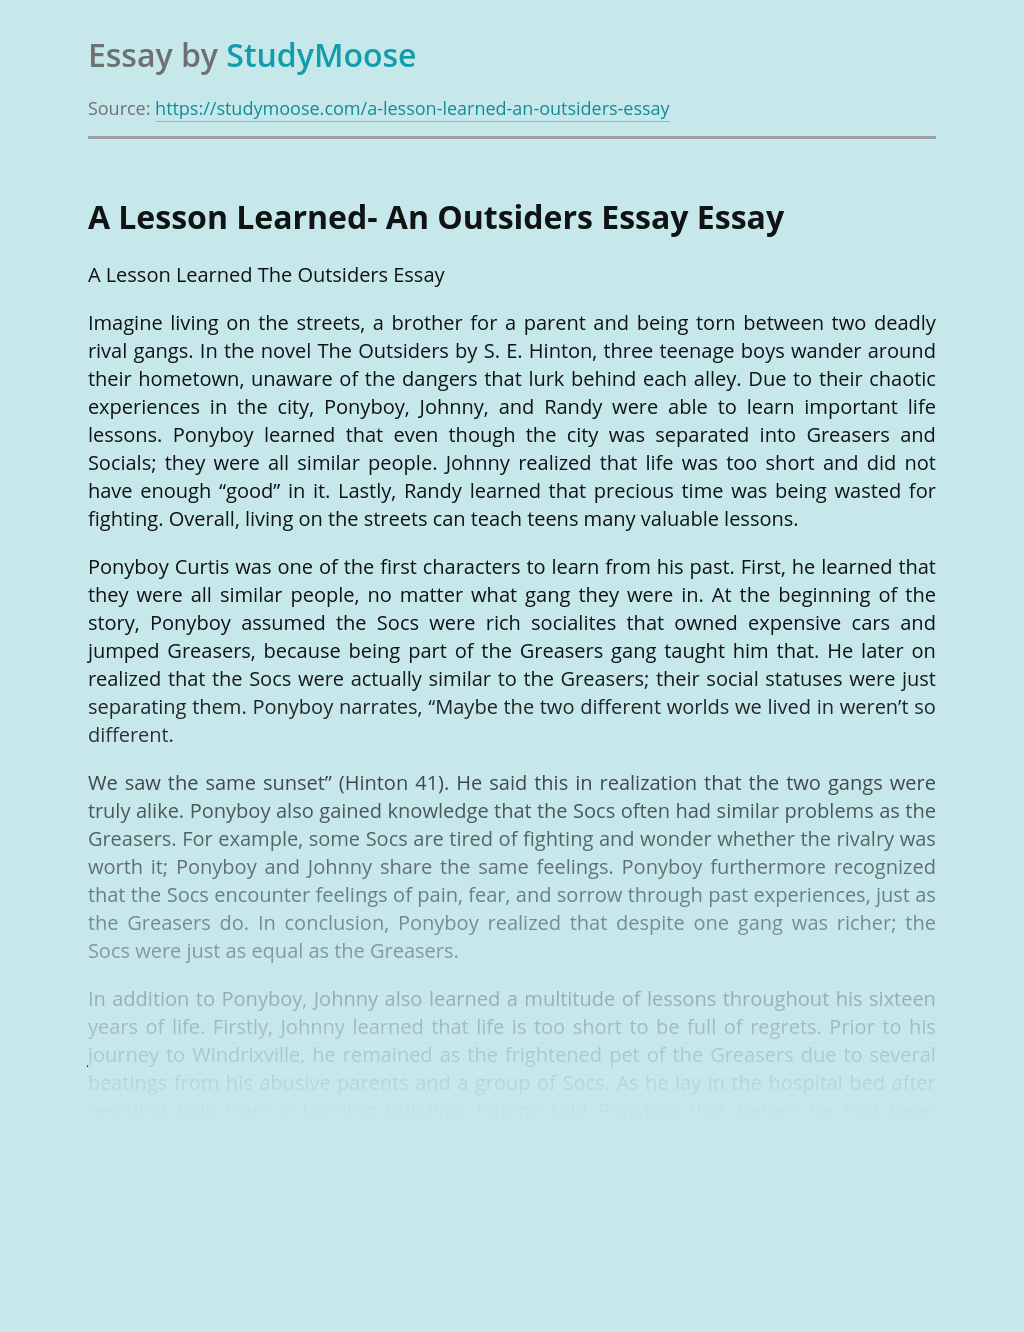 A Lesson Learned- An Outsiders Essay